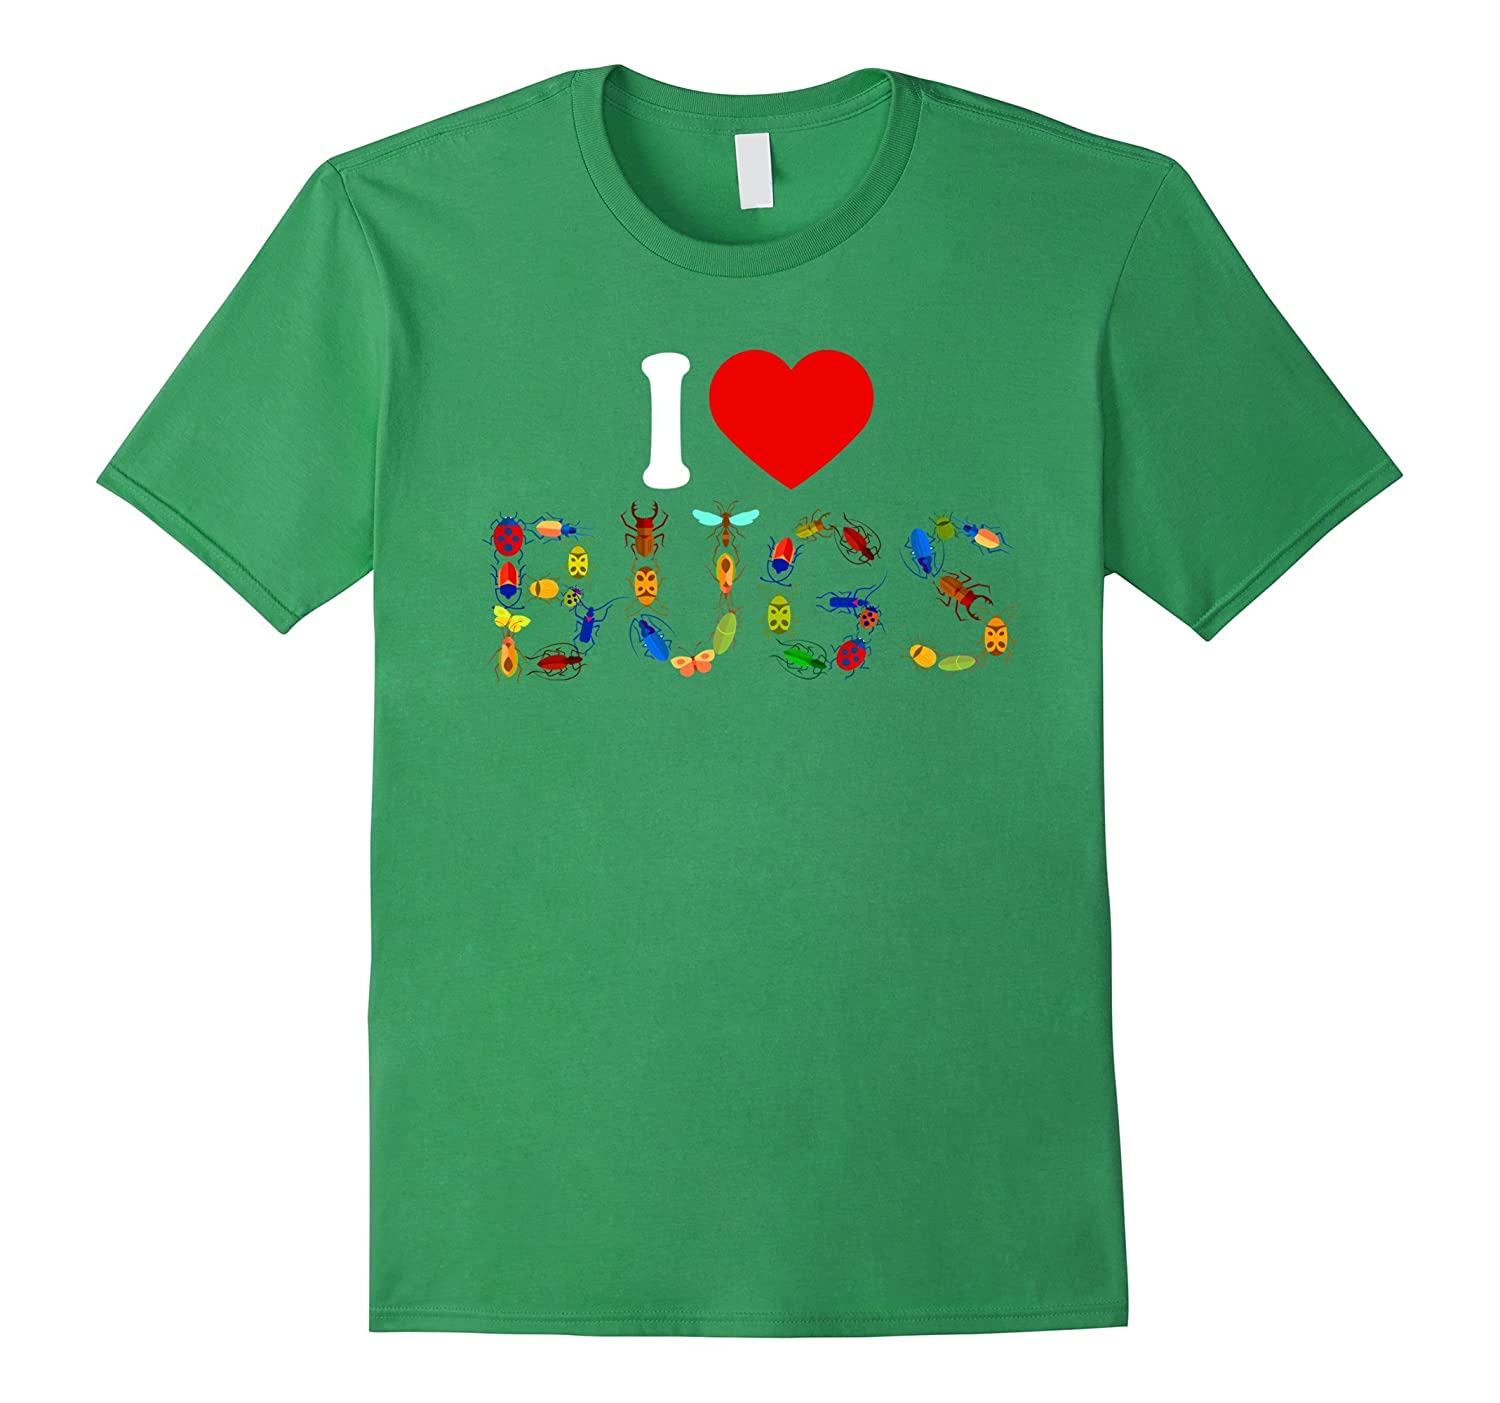 I Love Bugs T Shirt - Insect Print Shirt-ANZ